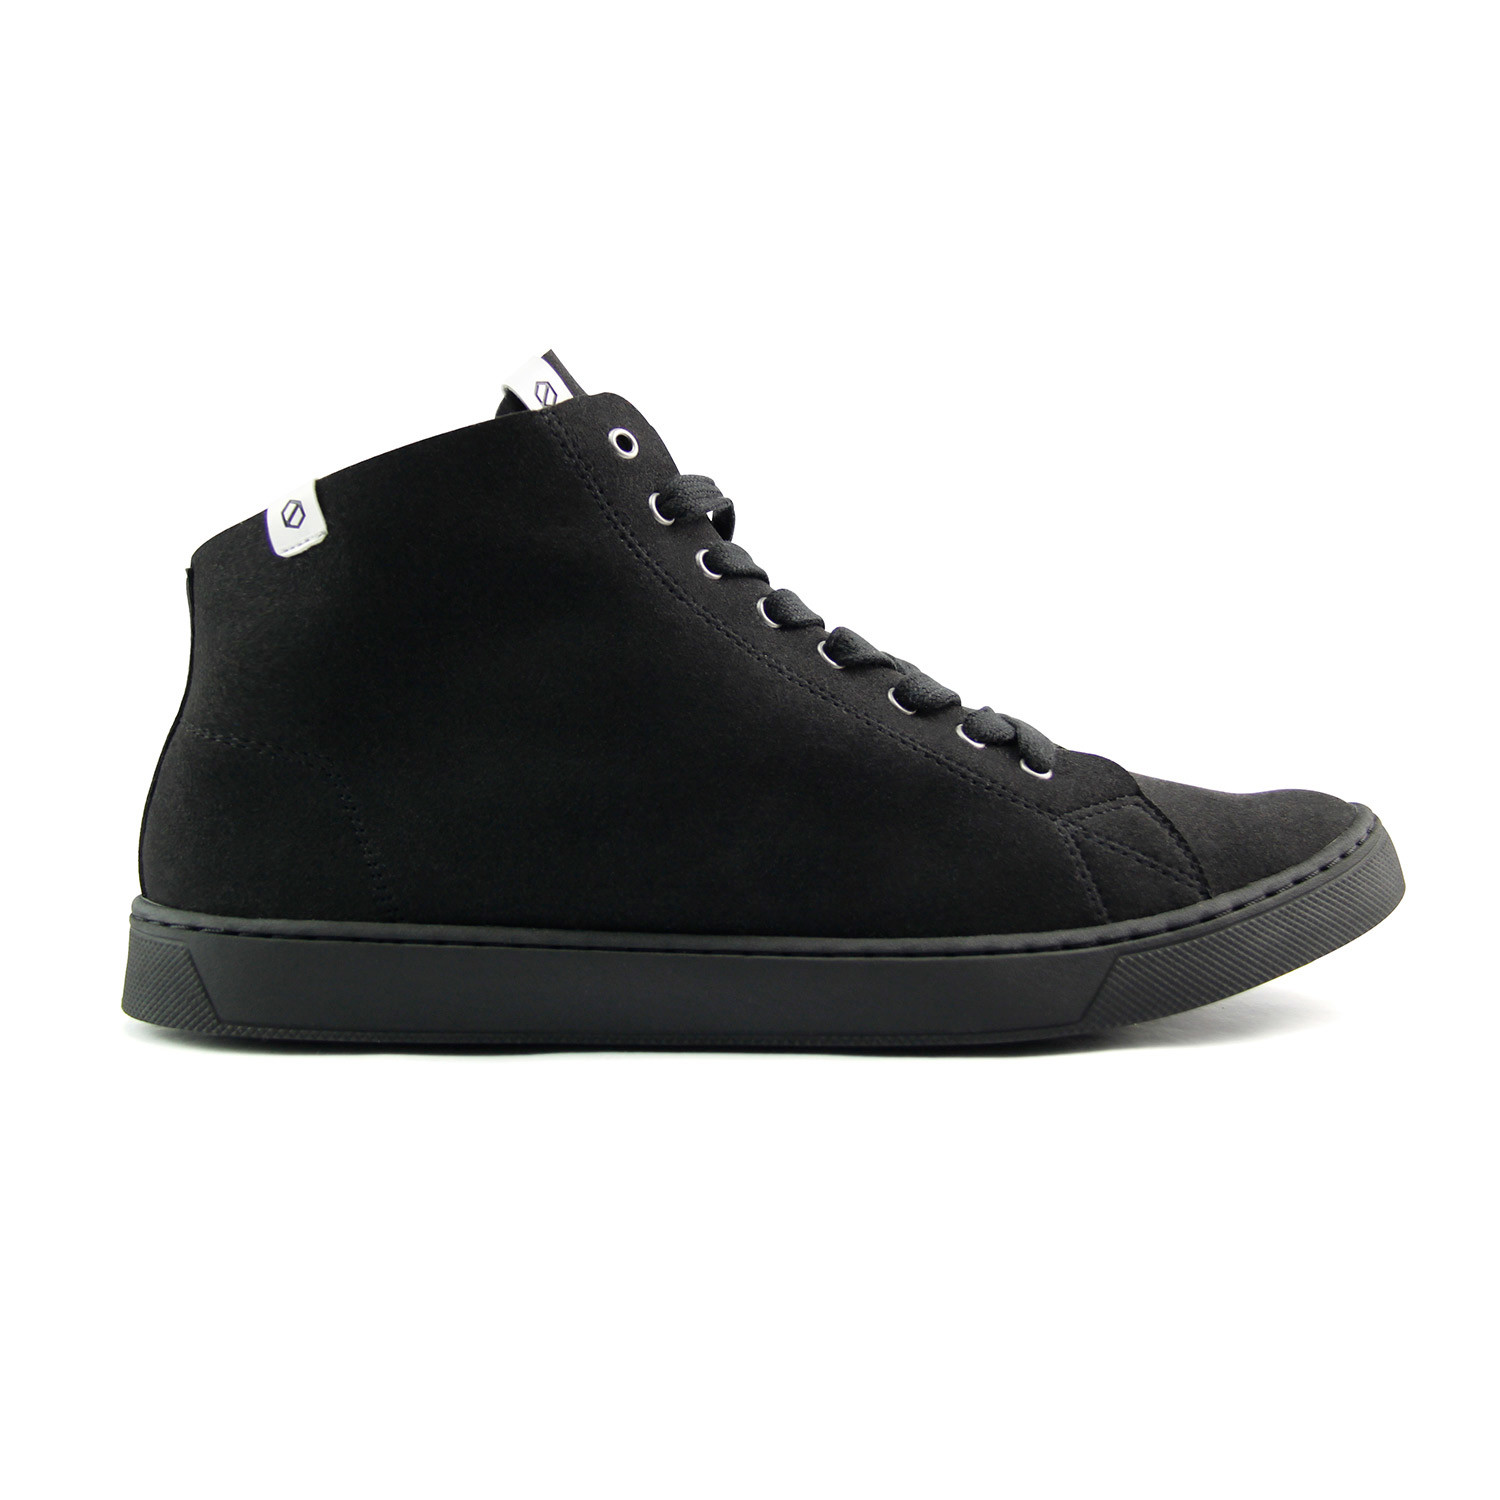 D Franklin Sneakers Shoes Black